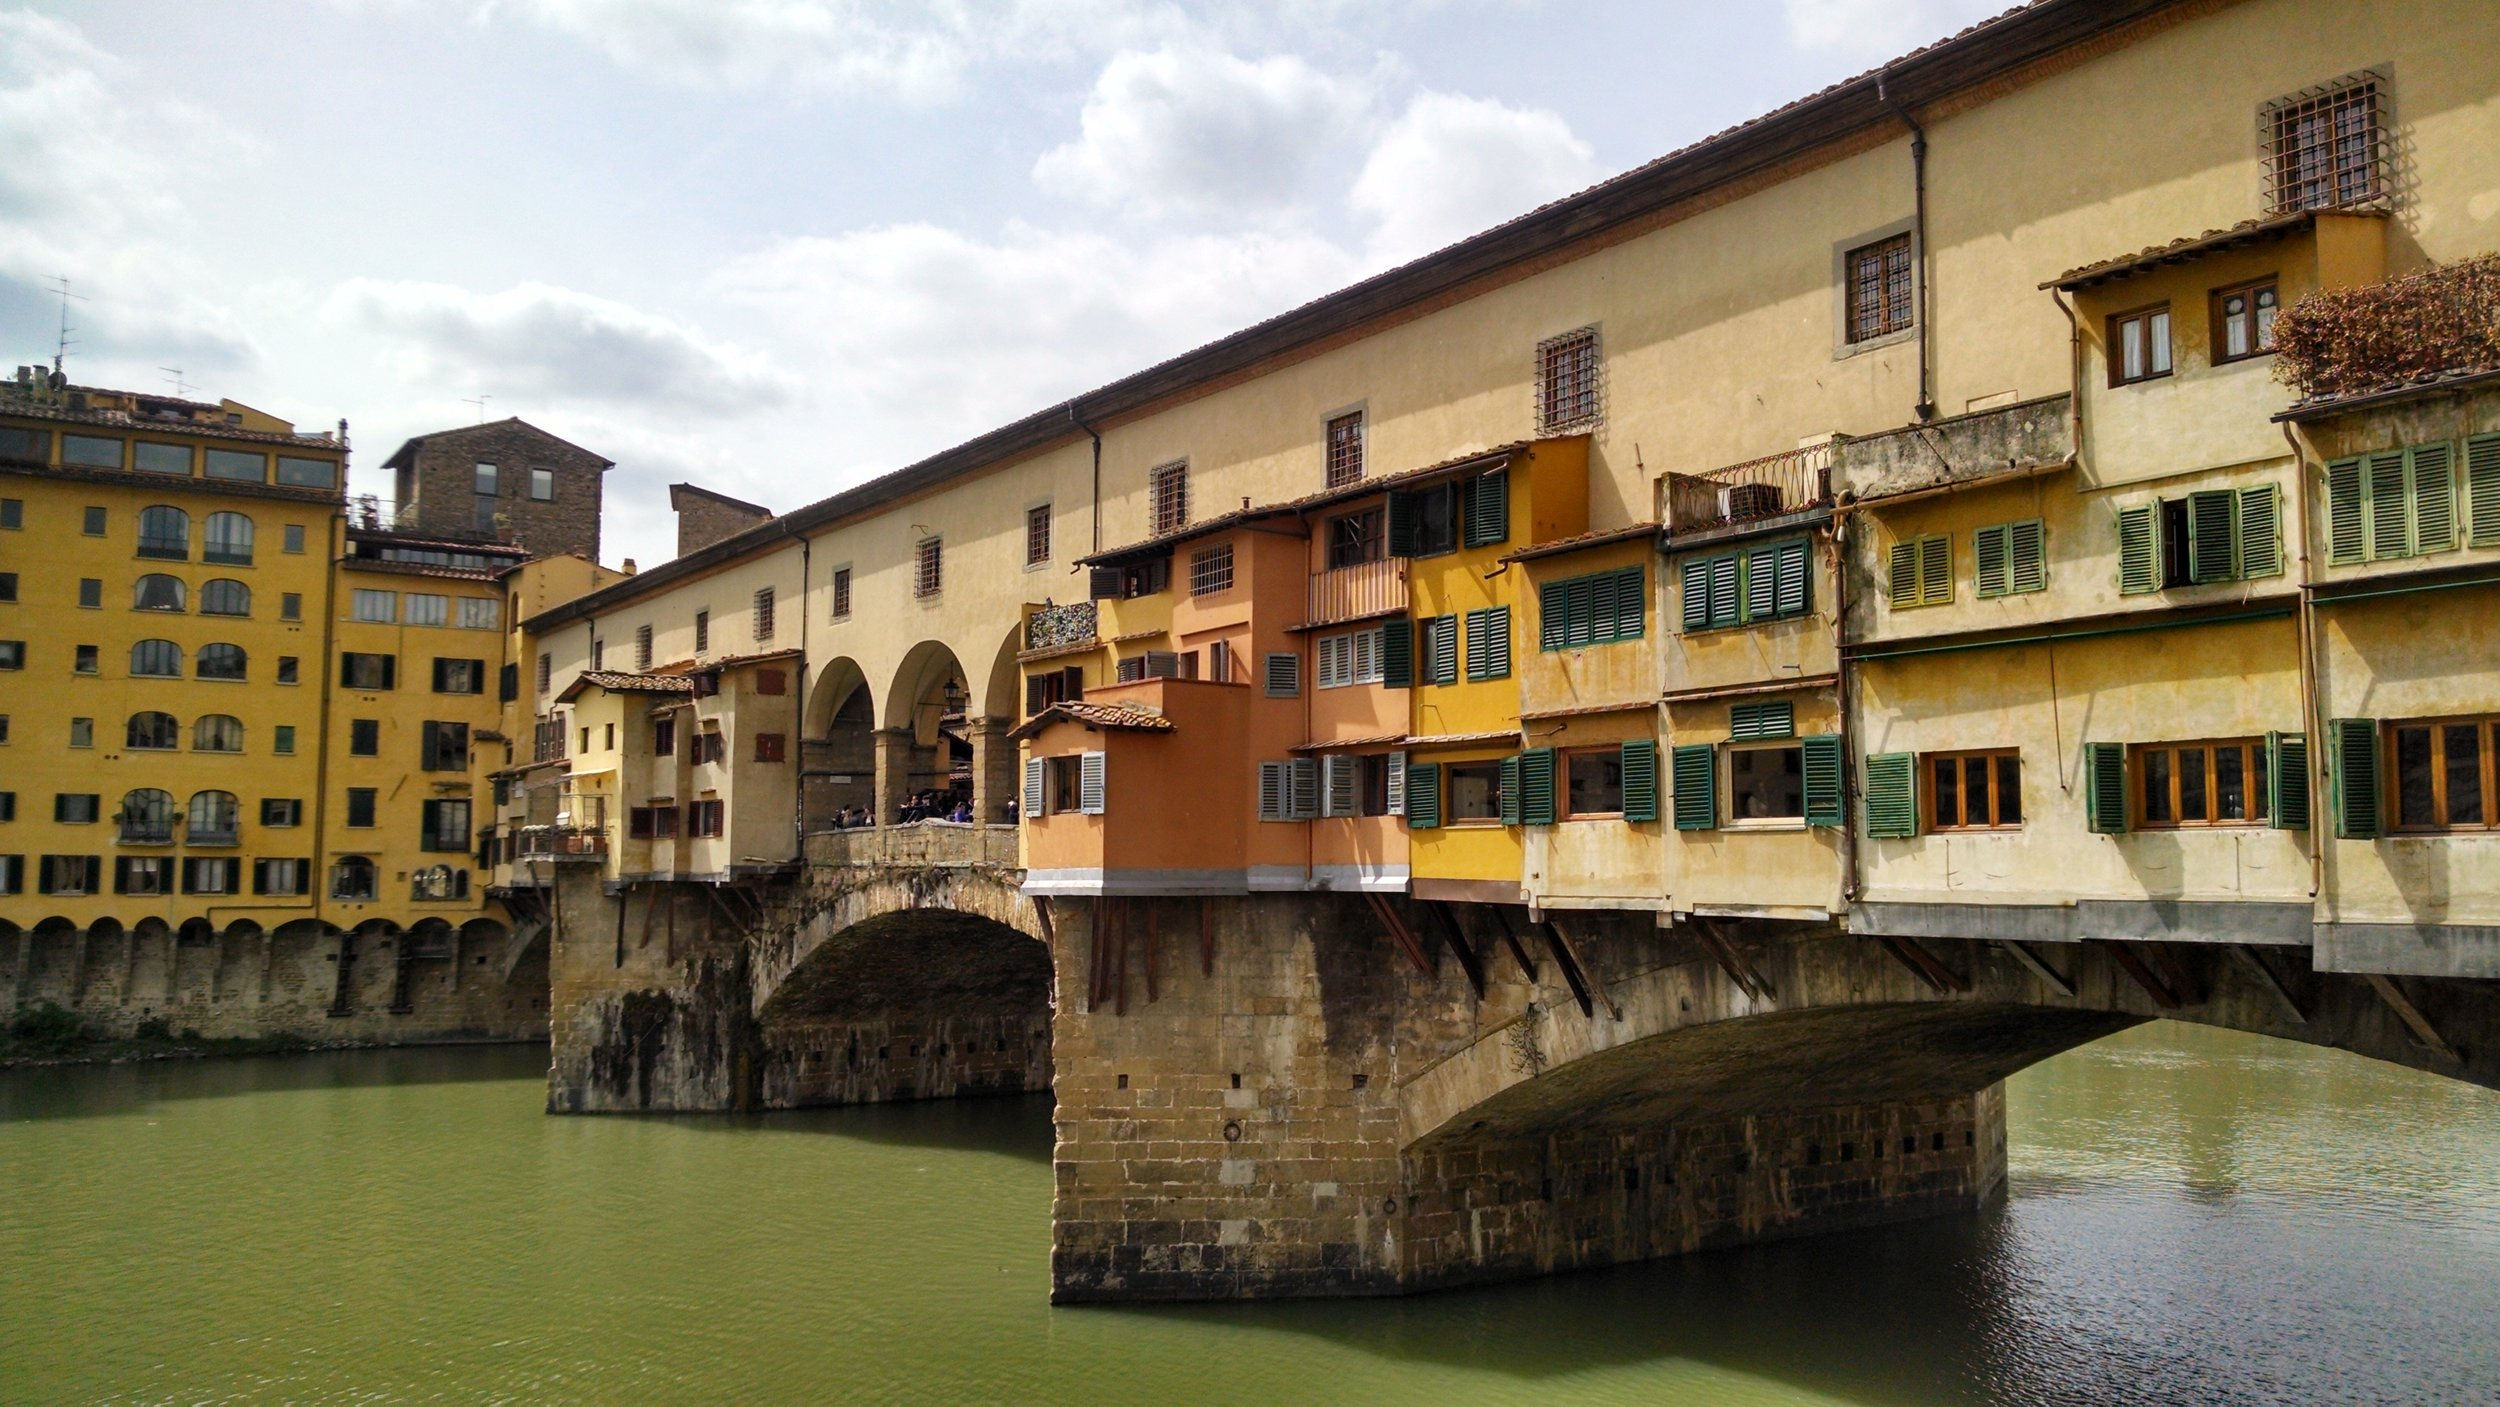 The charming Ponte Vecchio in Florence, Italy